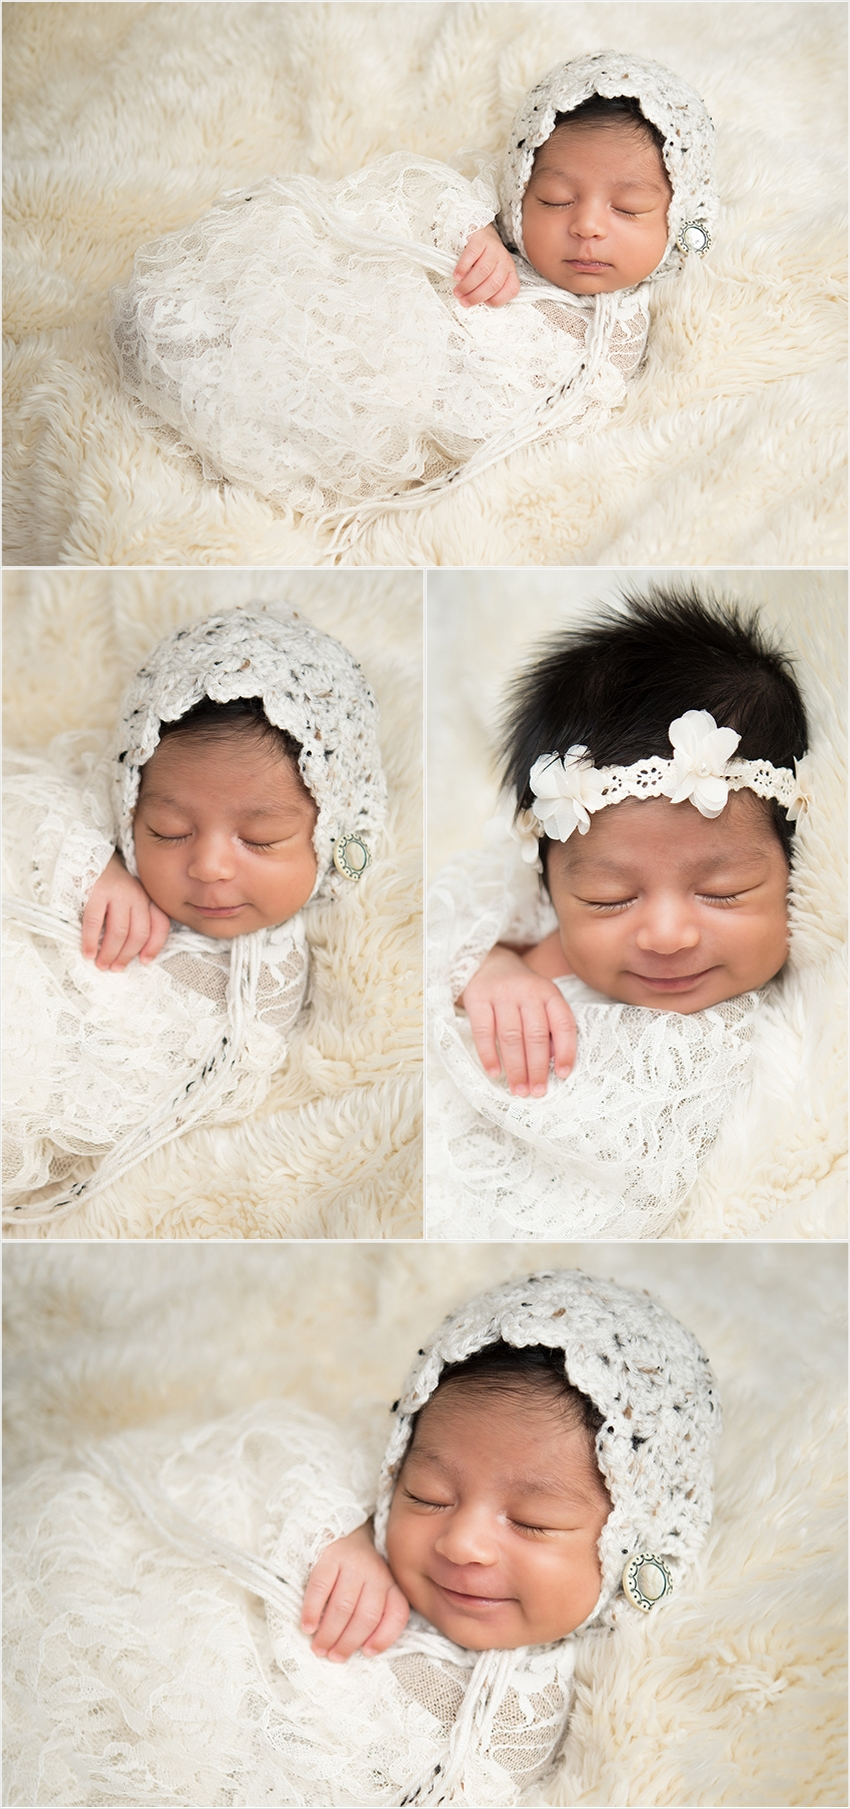 Abbotsford Newborn Photographer Newborn Photographer 004 (Side 4)